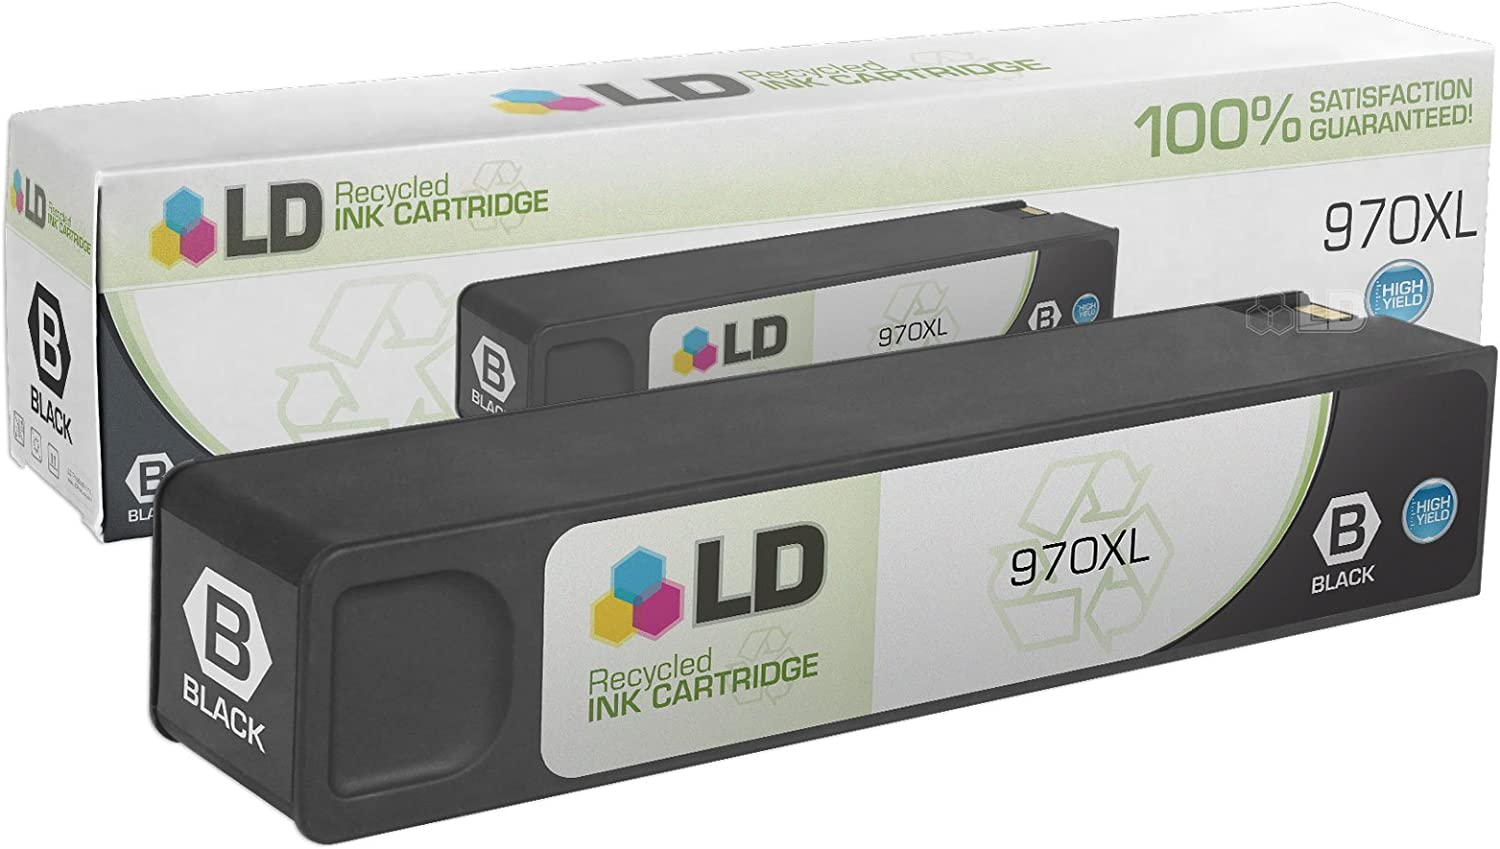 LD Remanufactured Ink Cartridge Replacement for HP 970XL CN625AM High Yield (Black)